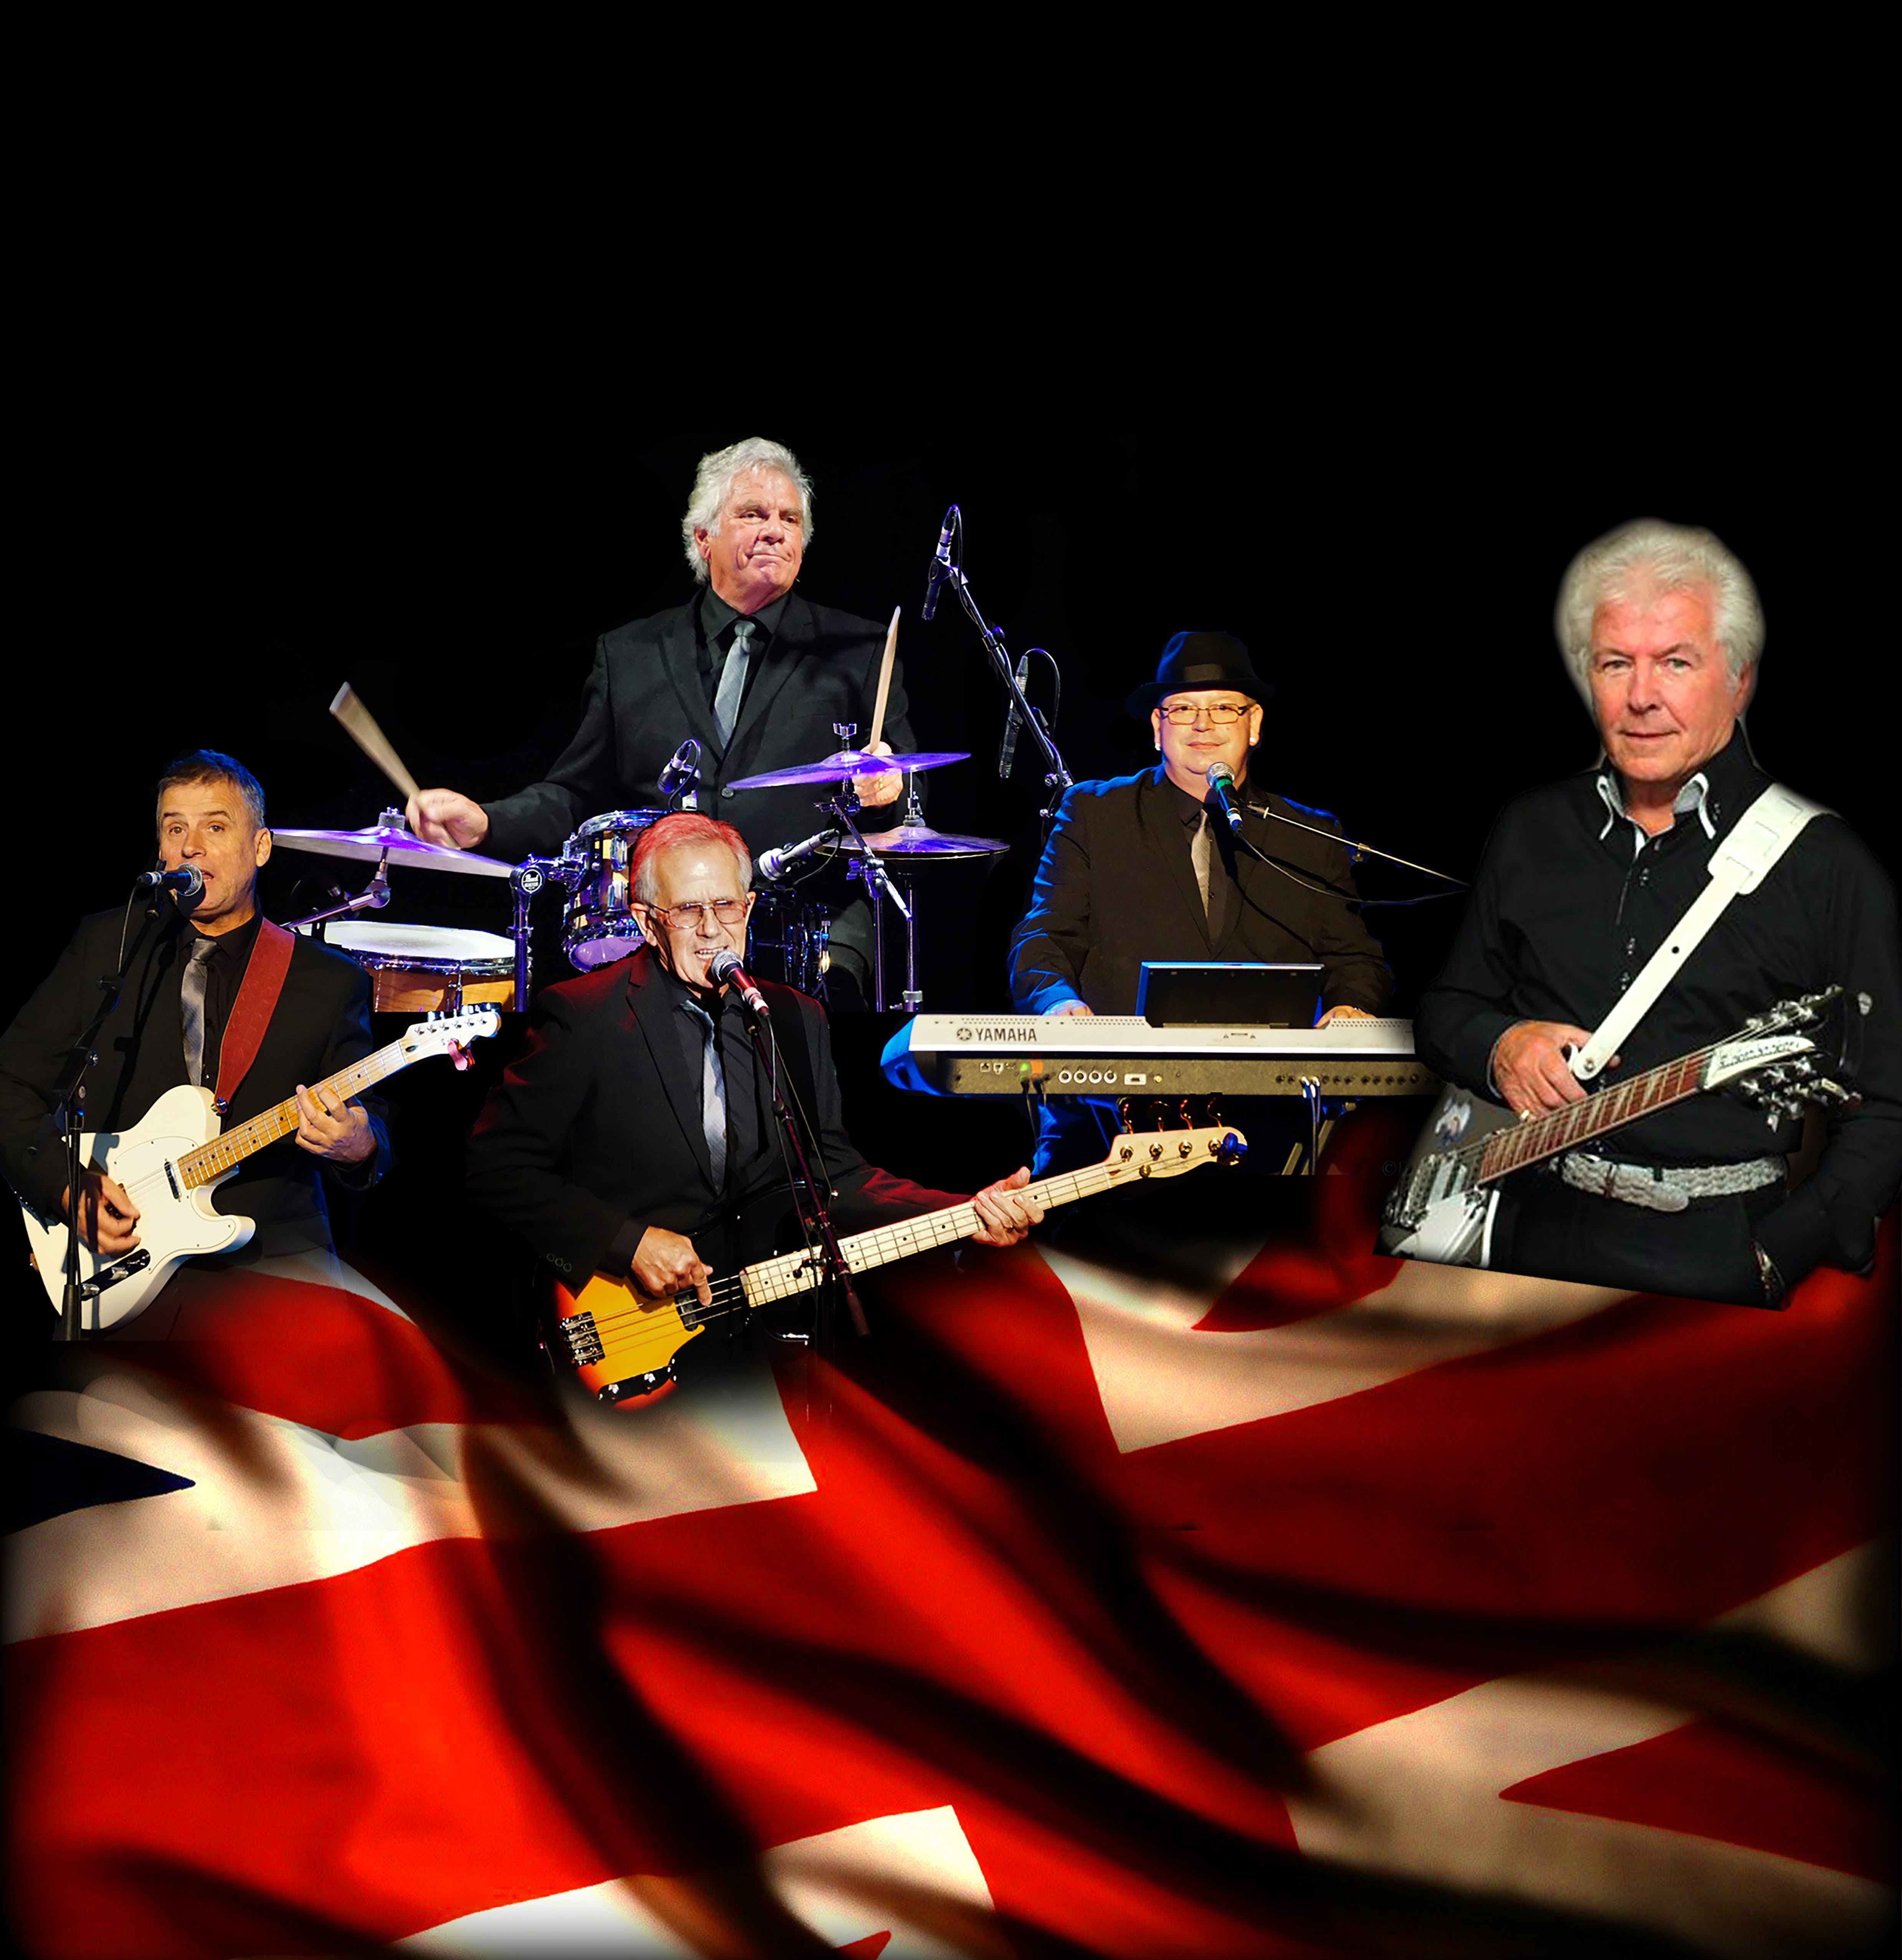 Herman's Hermits with Special Guest Mike Pender - The Six O'Clock Hop - Mackay Tourism